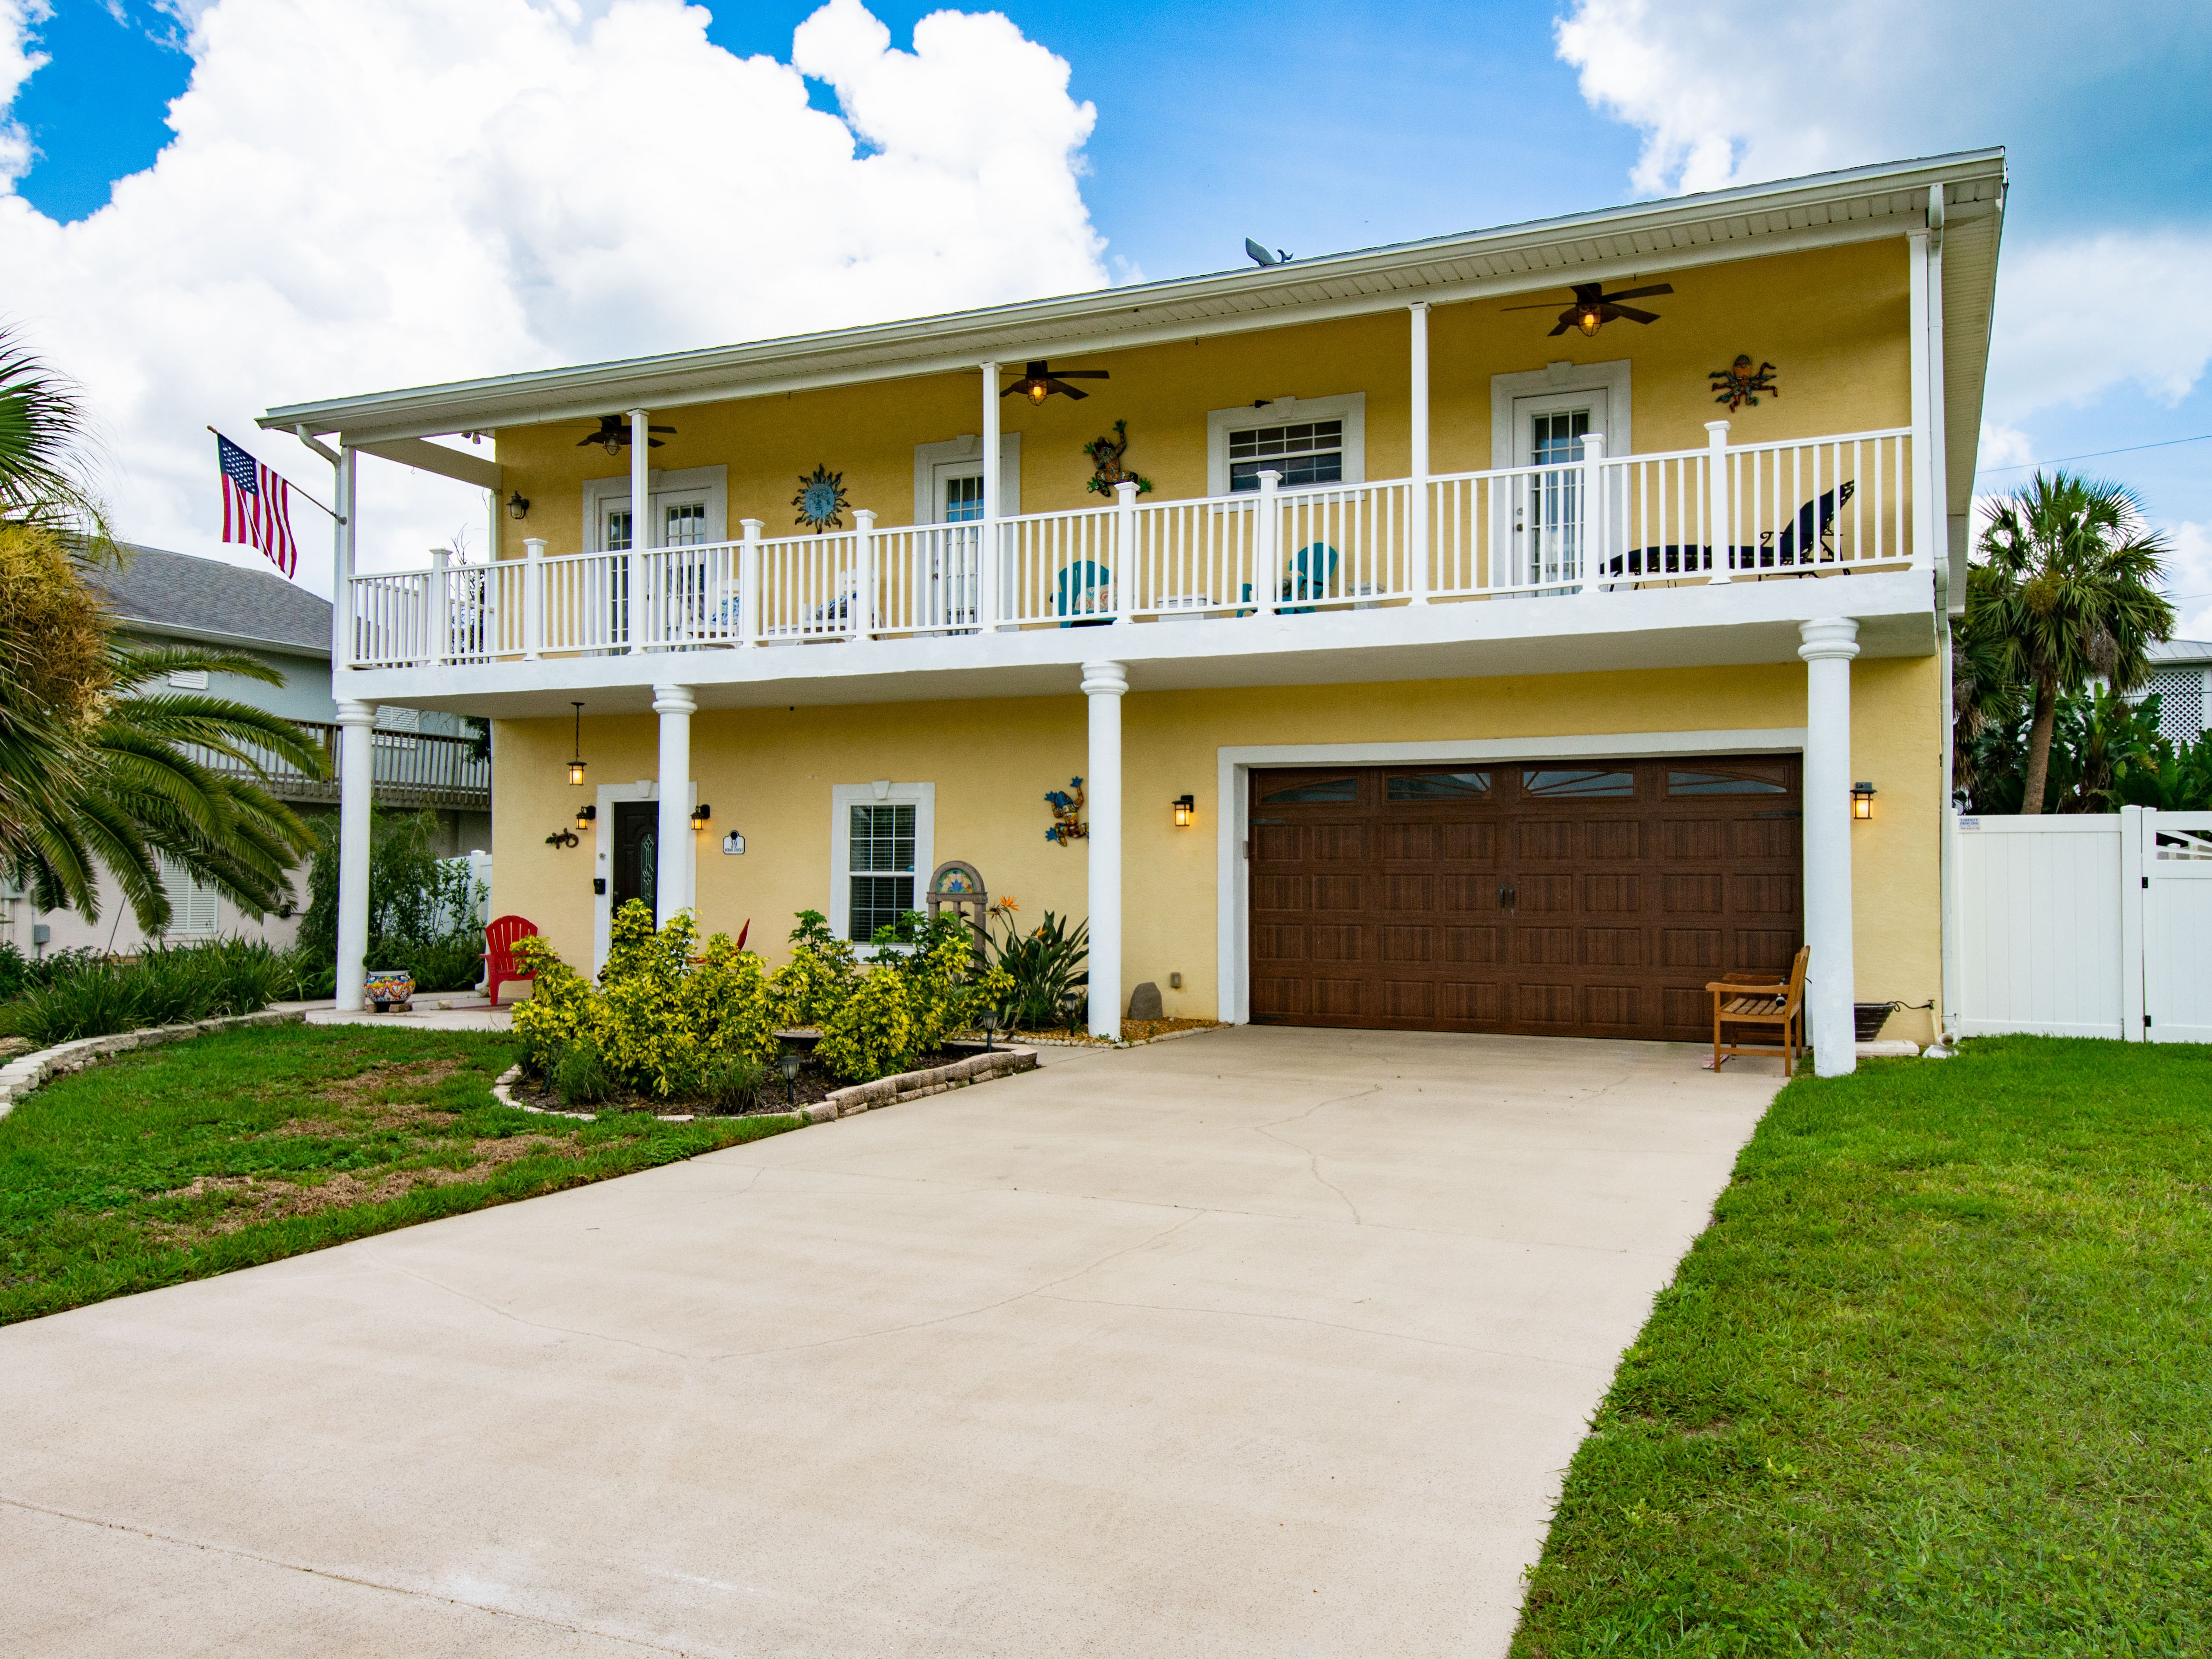 Welcome to Palm Coast! This beach home is professionally managed by TurnKey Vacation Rentals.